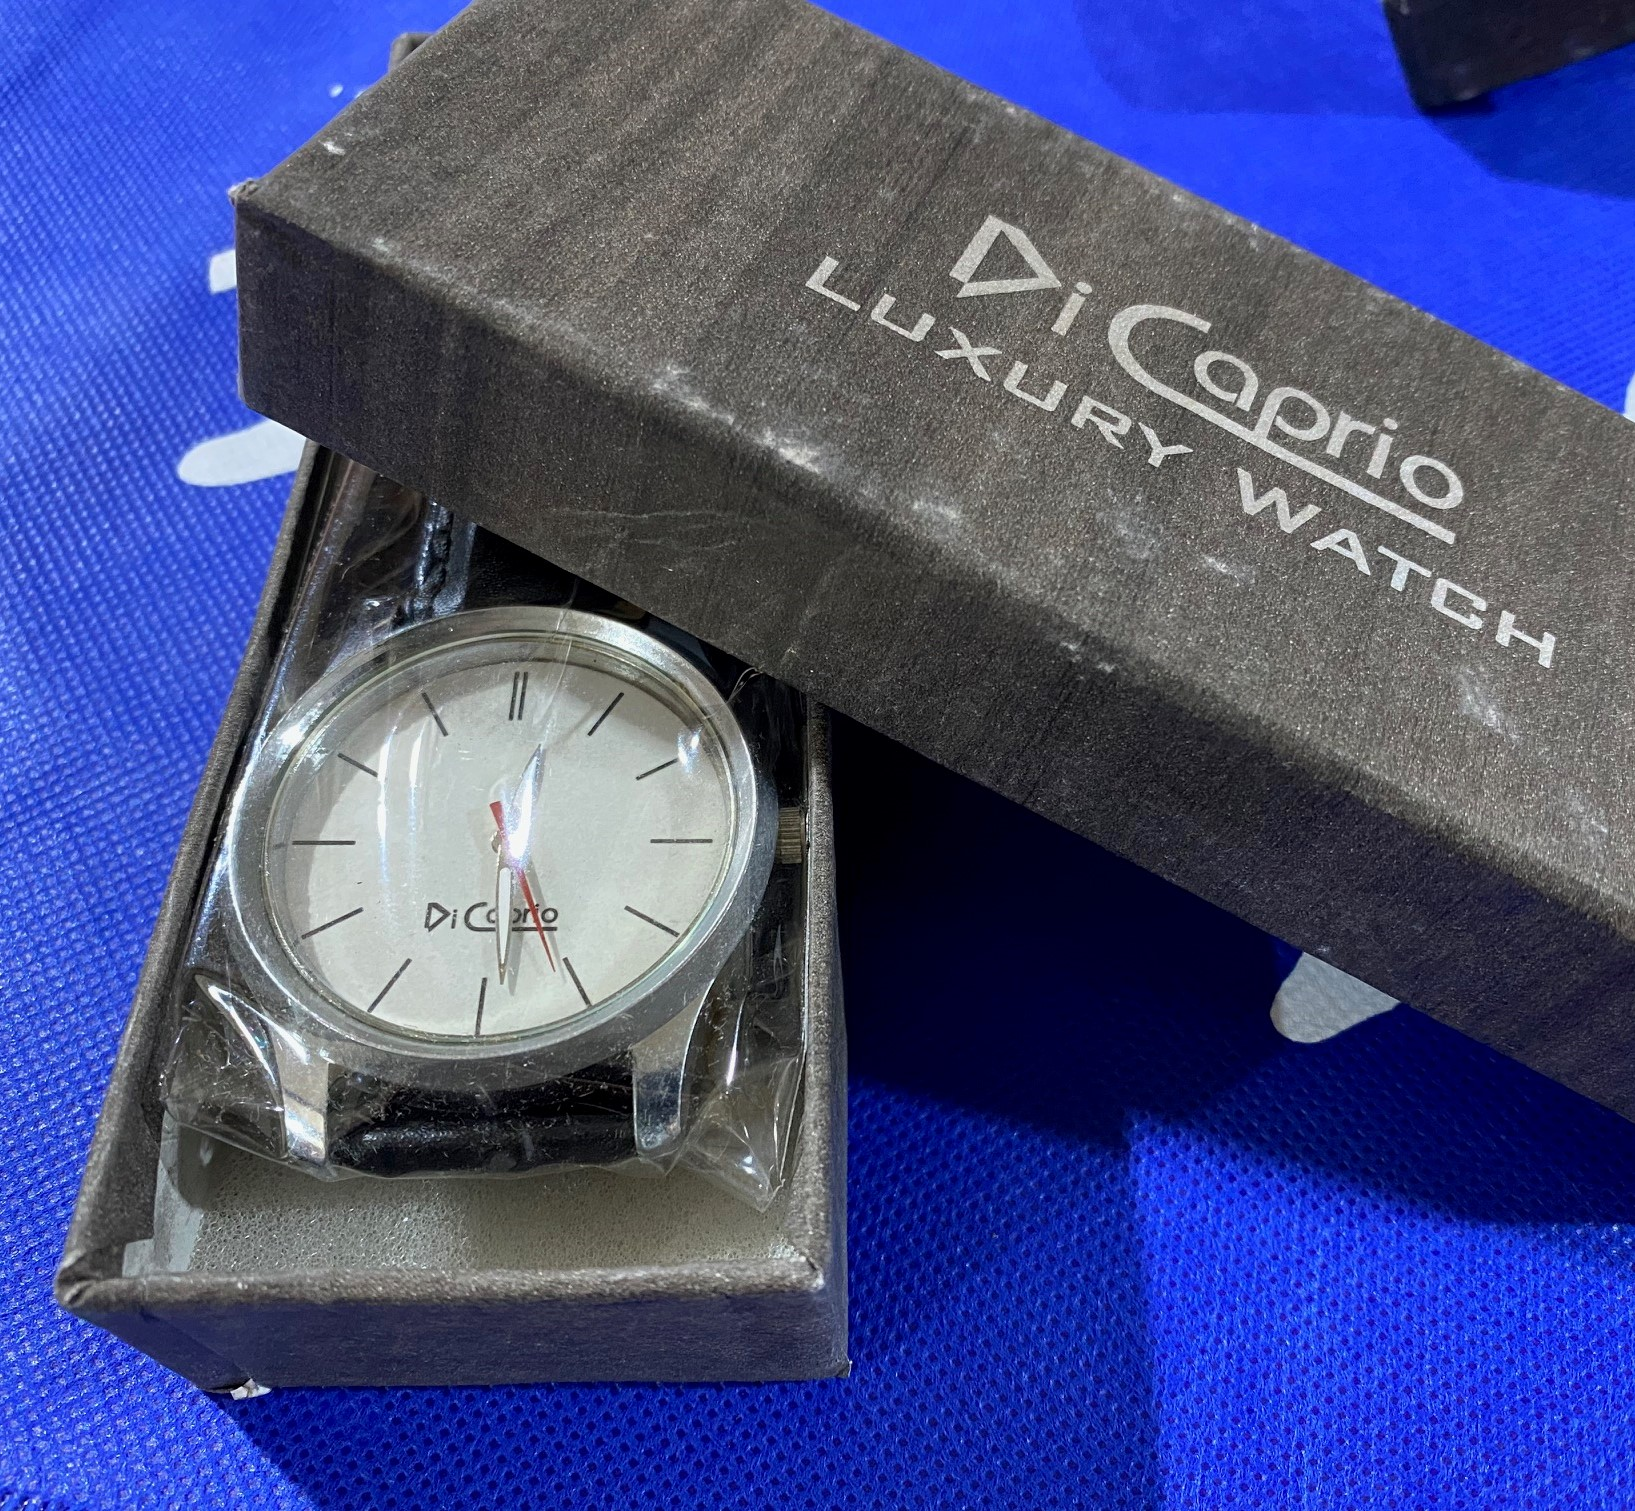 Lot of Dicaprio Watches for Men_2